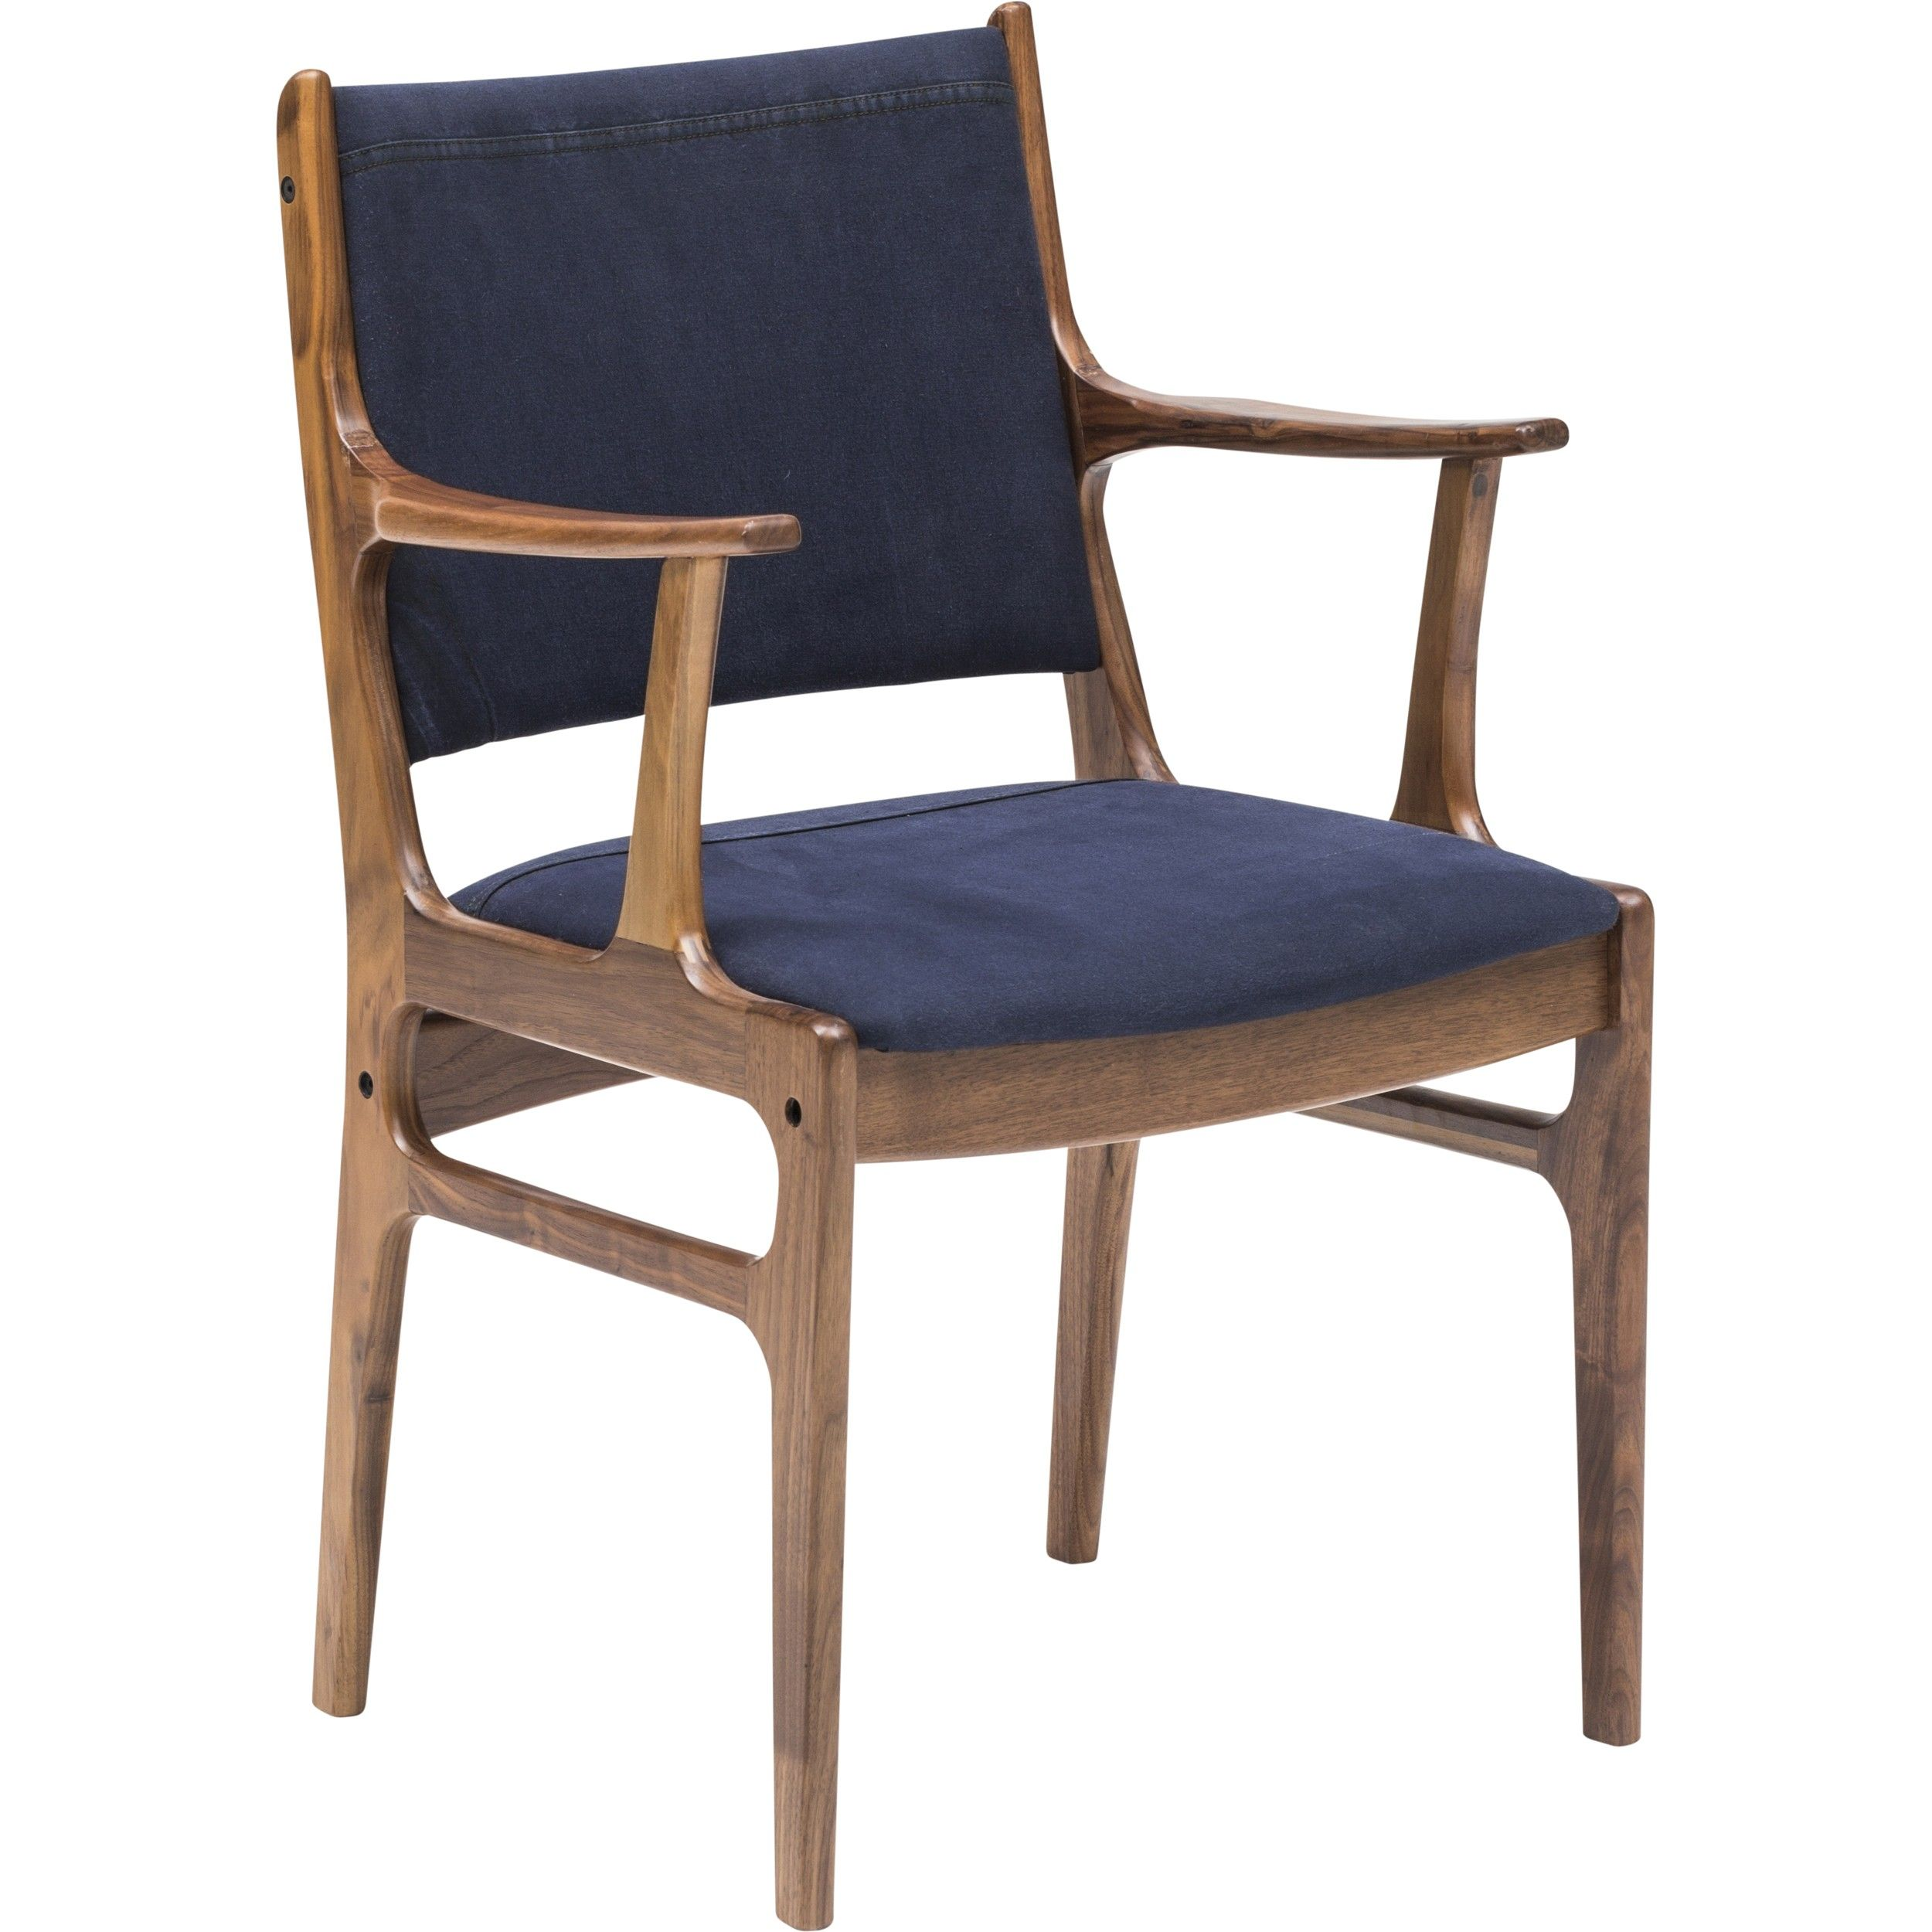 Dining Arm Chairs Black bina arm chair, dark blue canvas | dark blue, canvases and chair bench